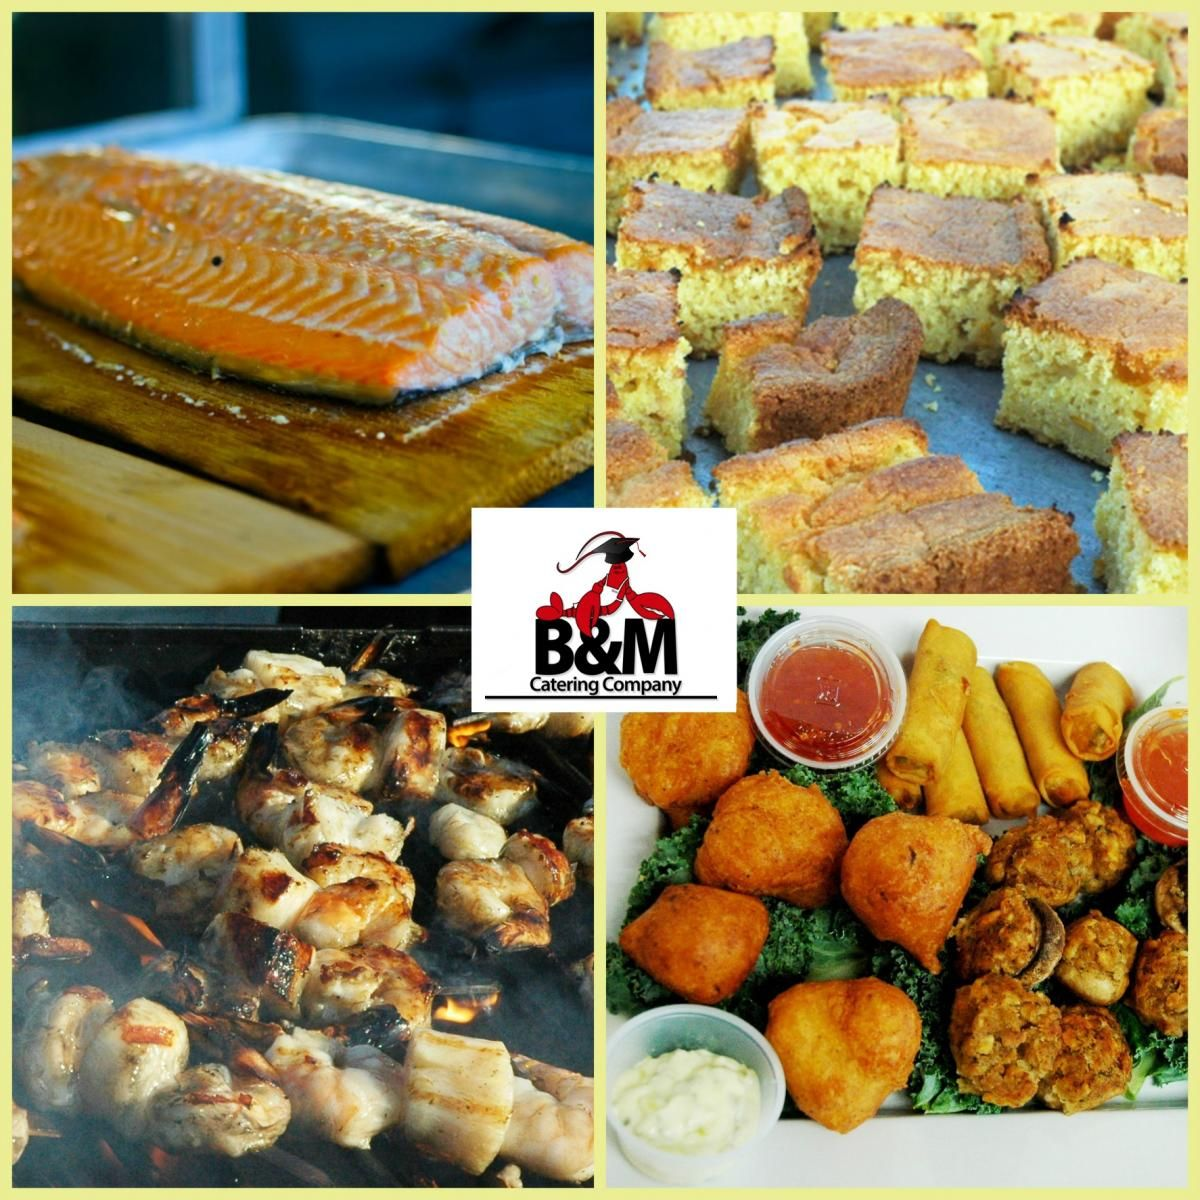 graduation catering food B&M Catering Full Service and